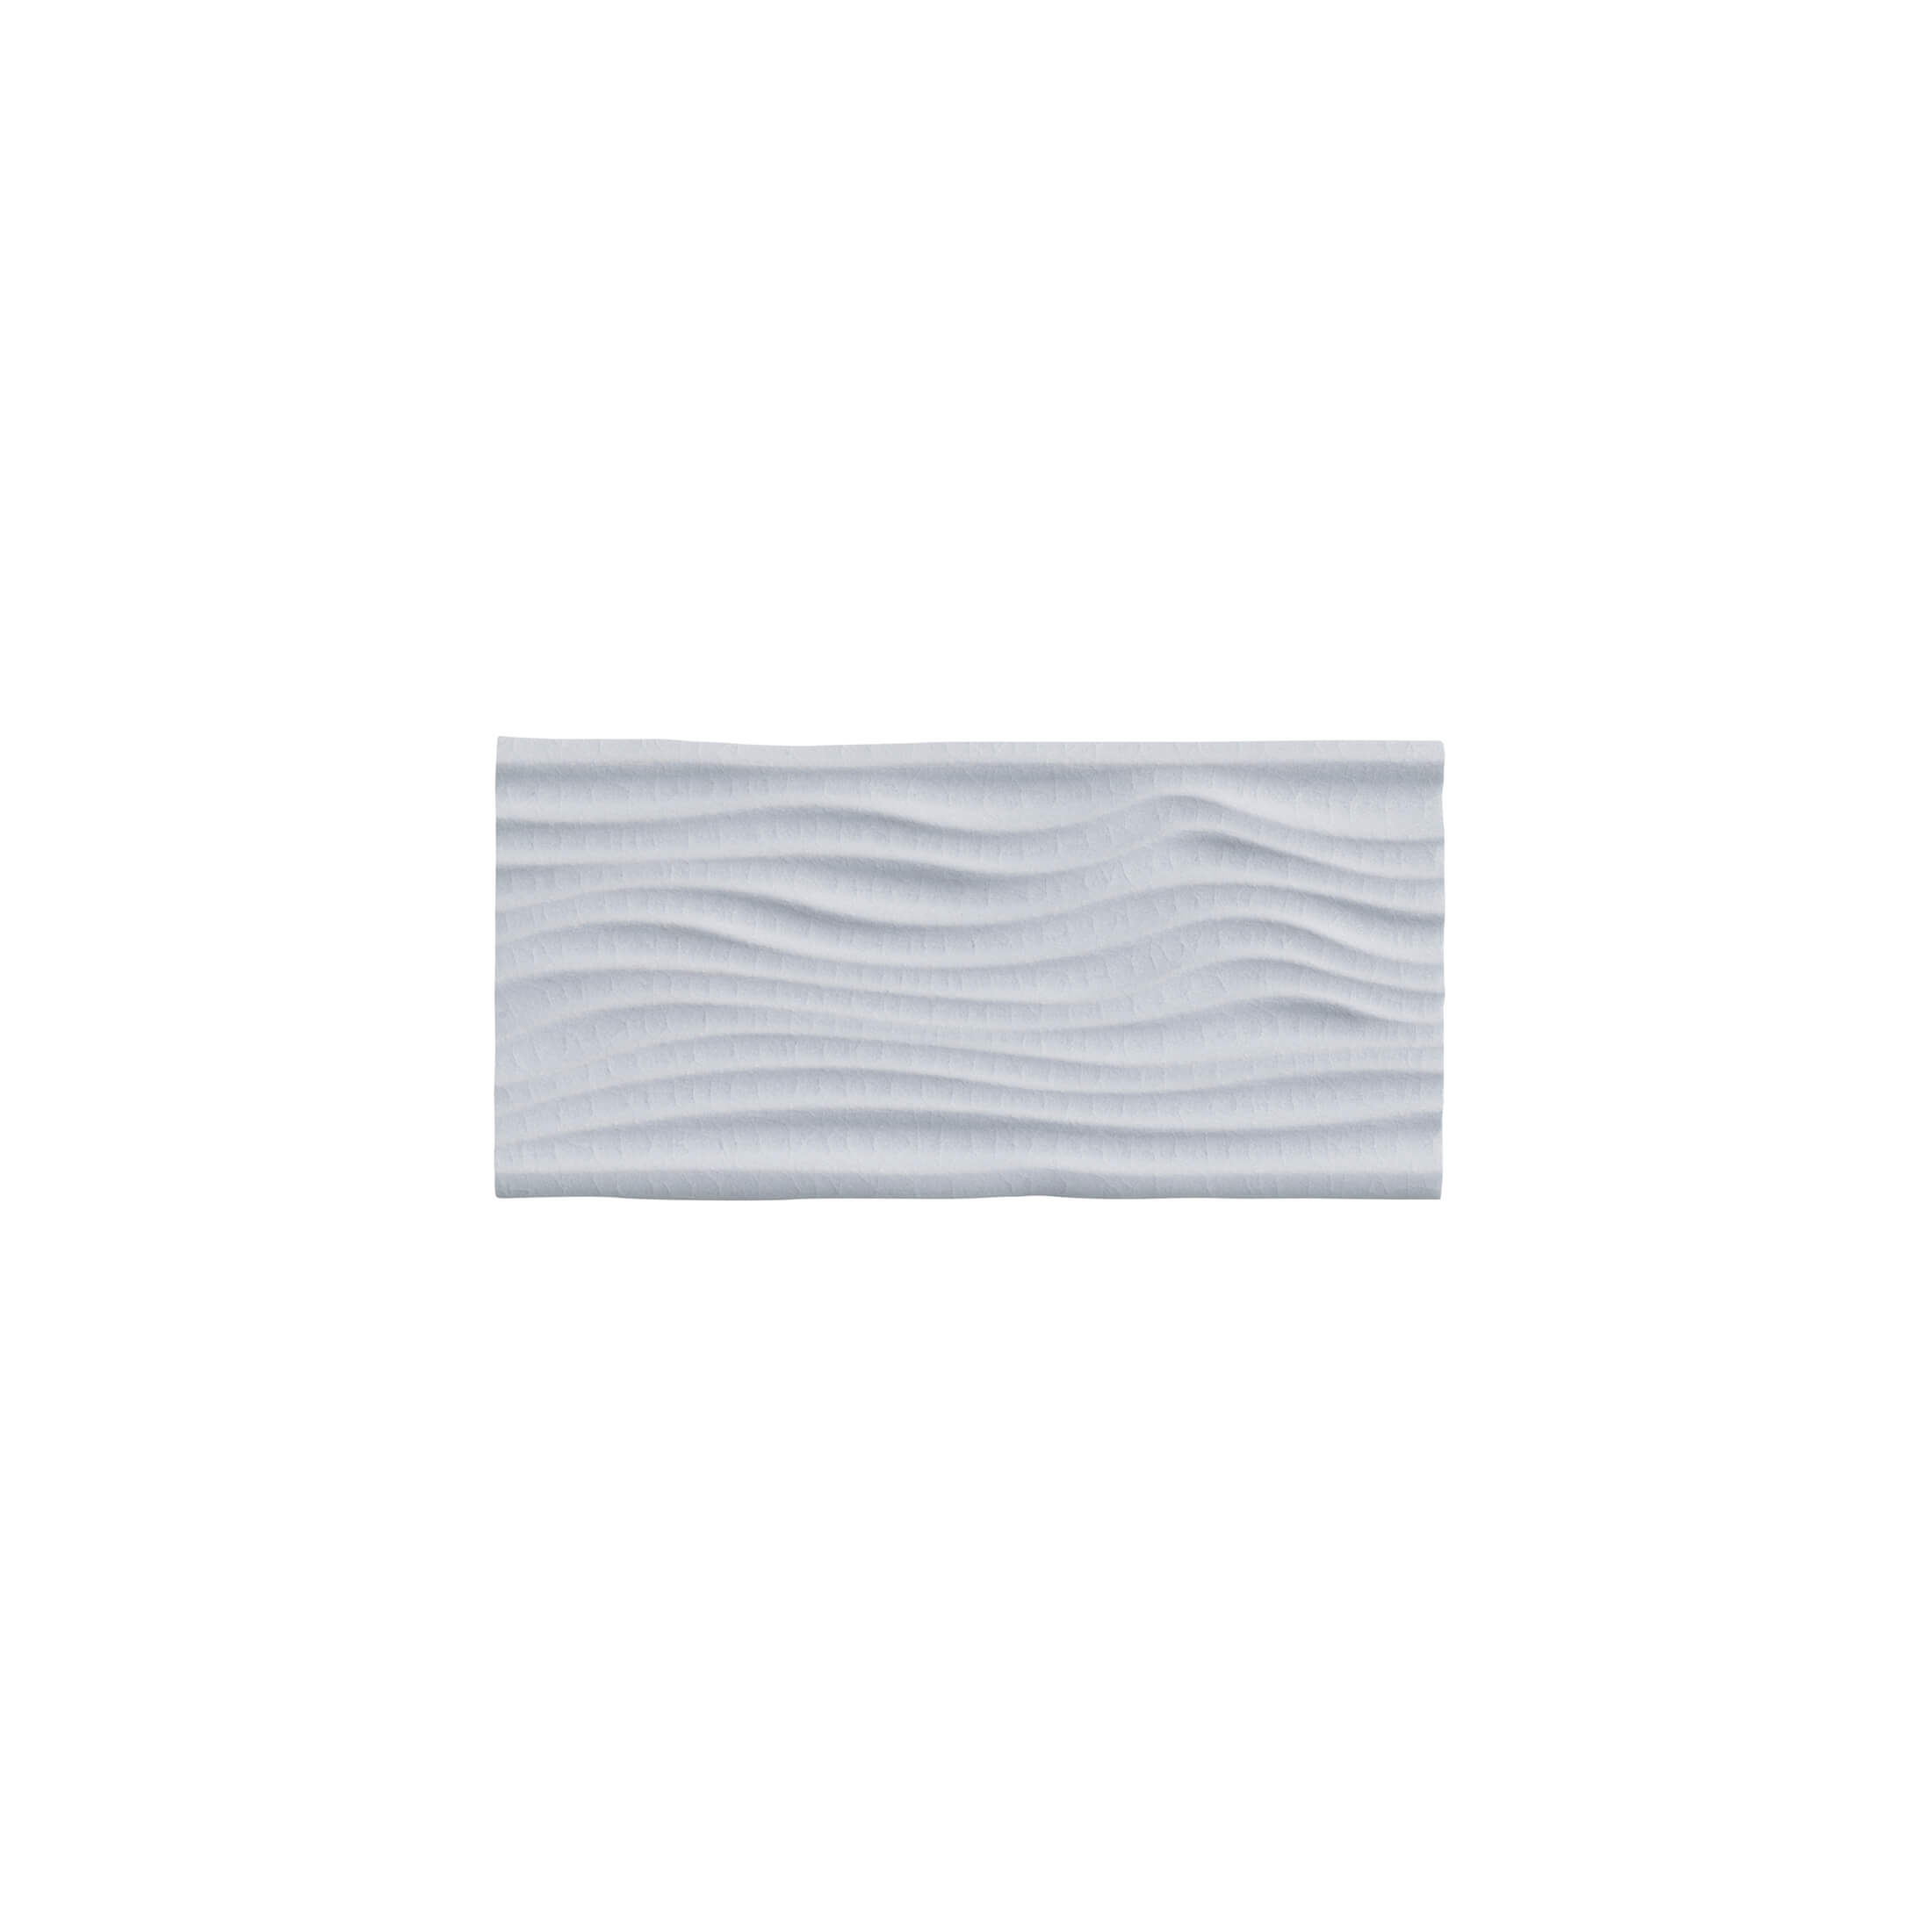 ADEH1017 - LISO WAVES - 7.5 cm X 15 cm